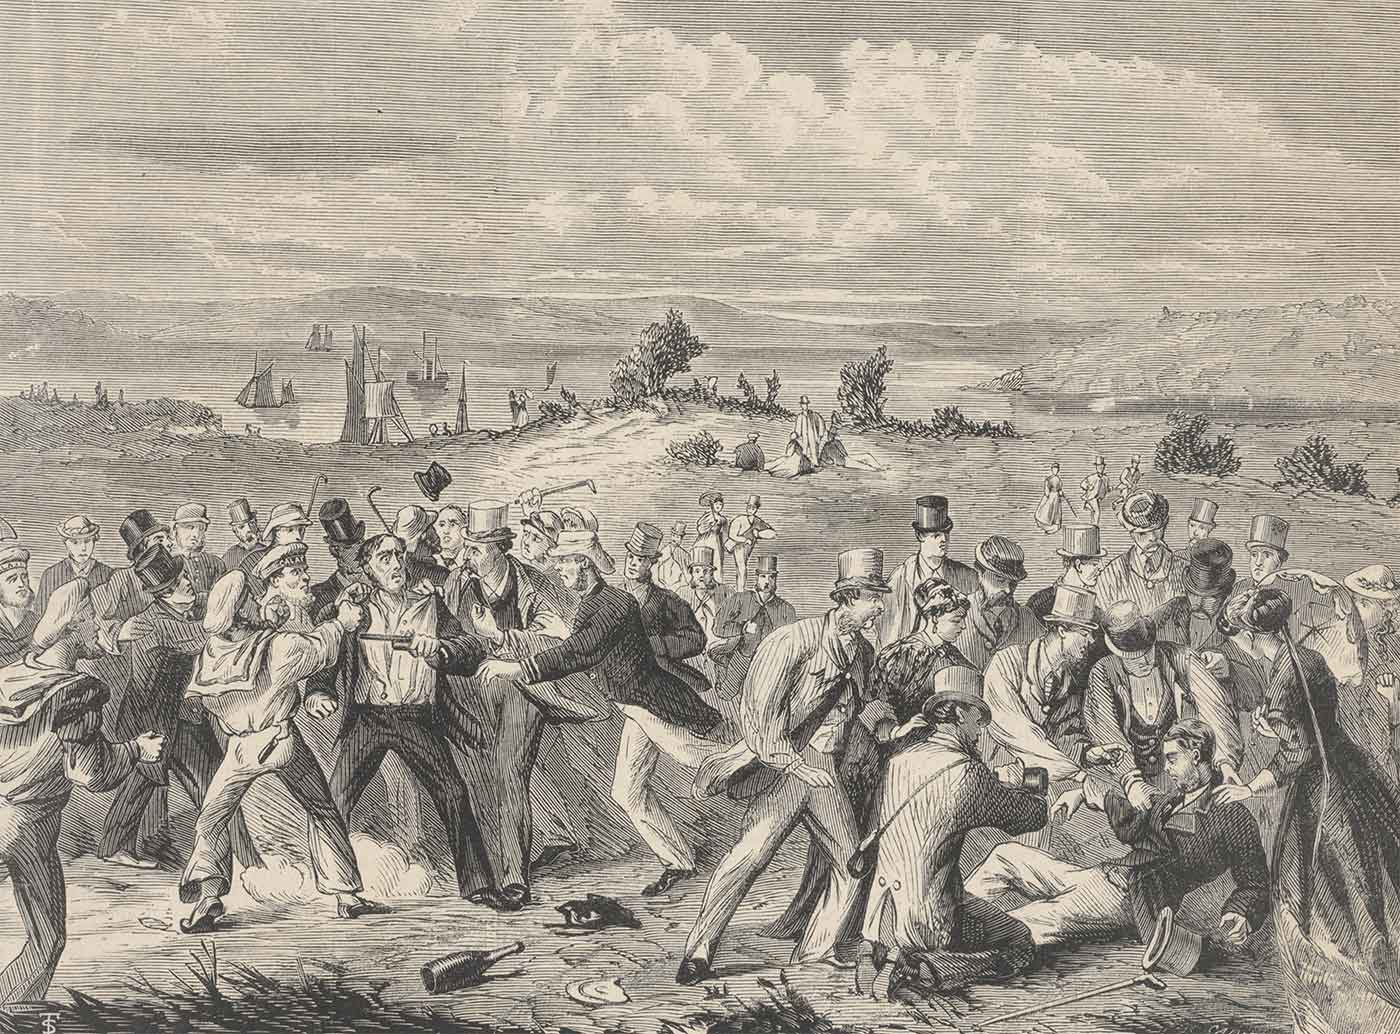 Sketch or print of a large group of men wearing 19th Century attire in a physical brawl with a landscape in the background. - click to view larger image